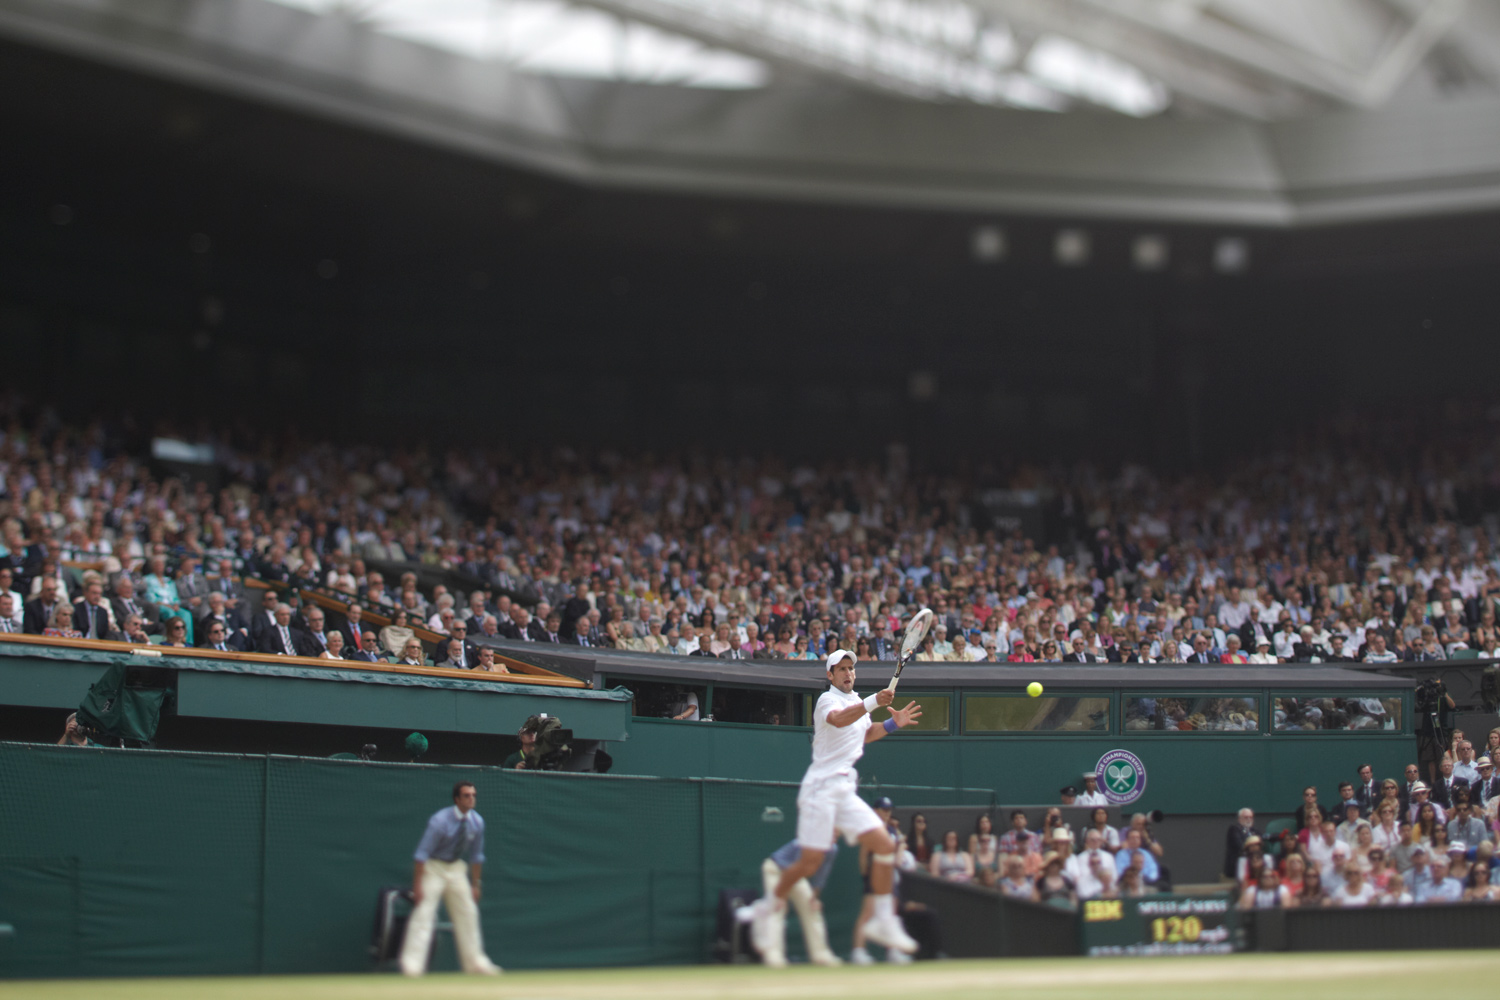 July 3, 2011. A wide view of Serbia's Novak Djokovic in action against Spain's Rafael Nadal during the Men's final match at All England Club.